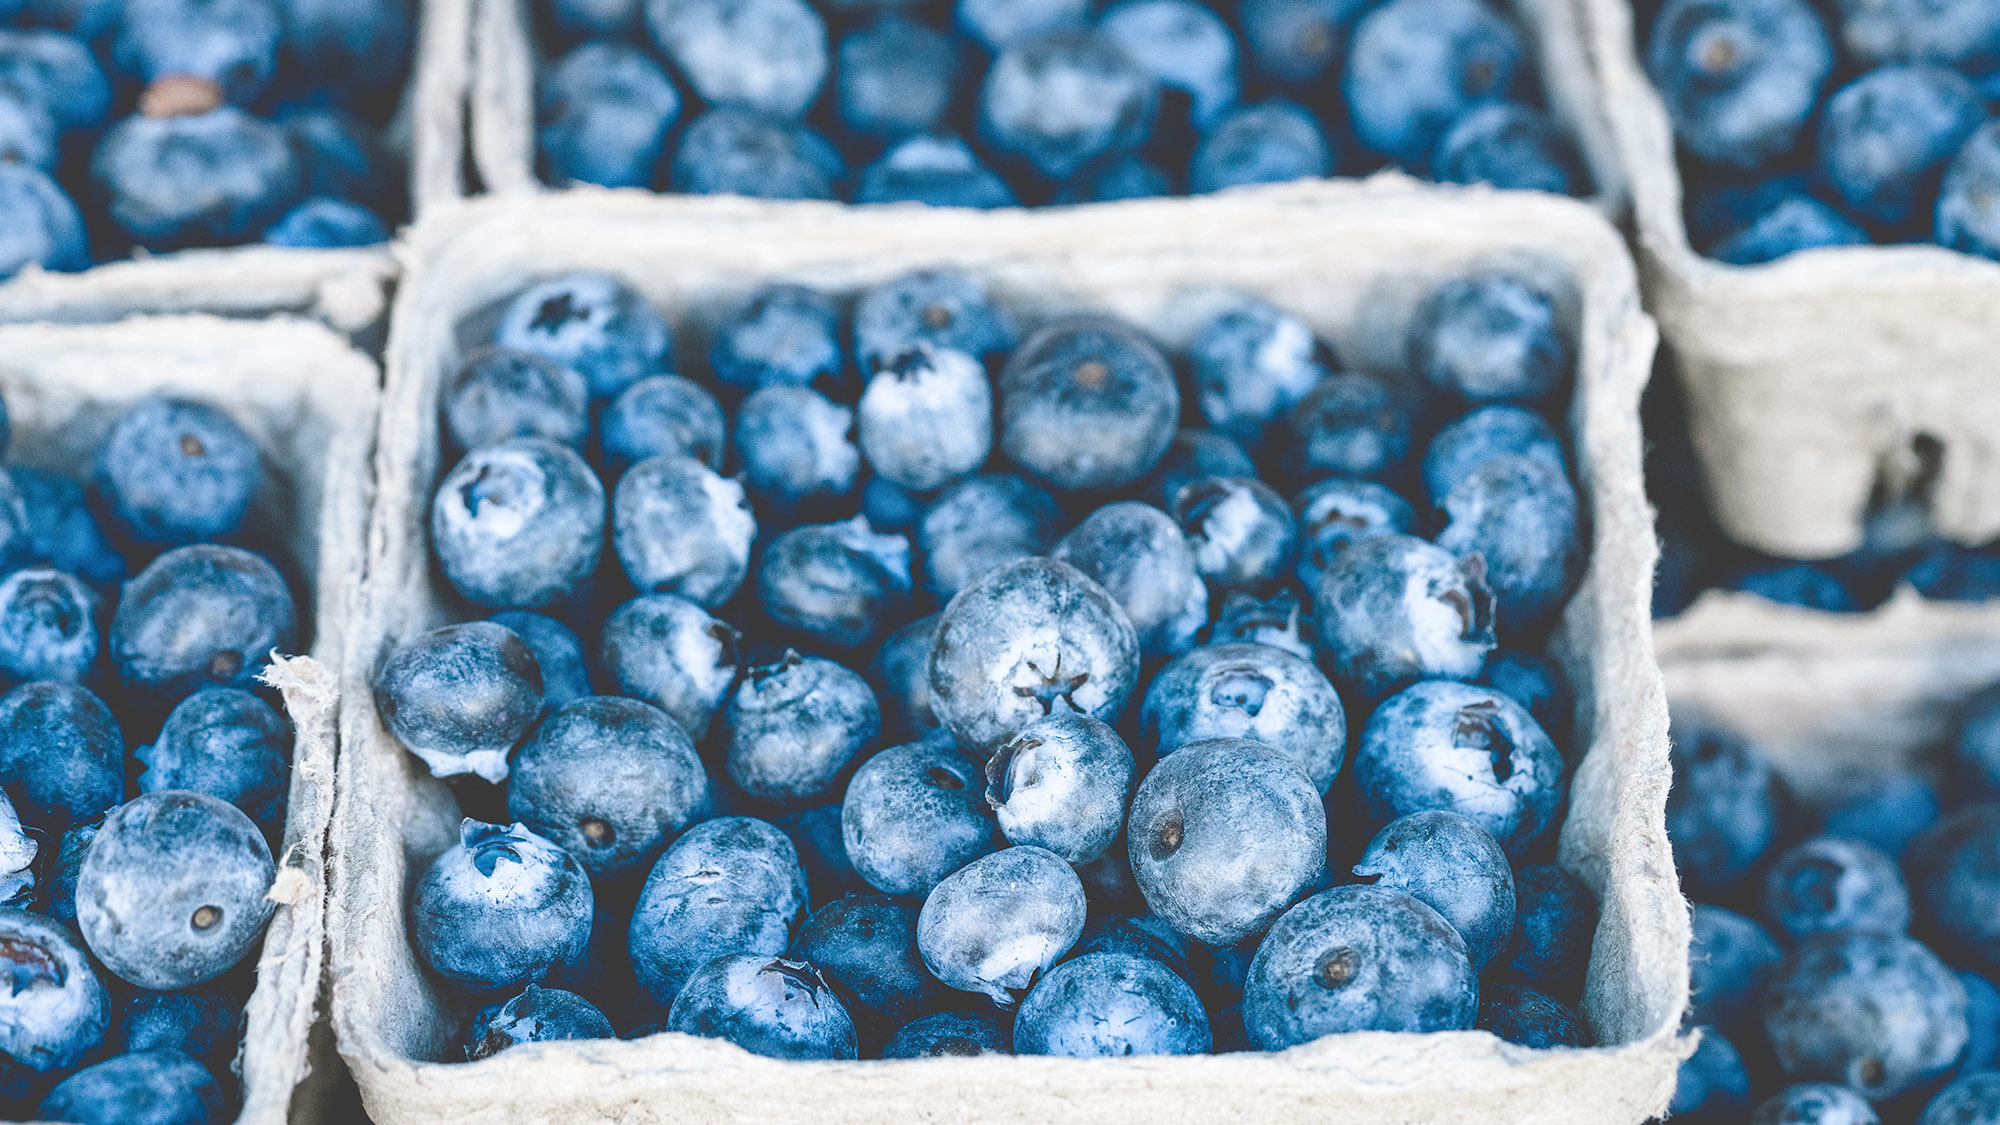 Delicious blueberries ready for pie!